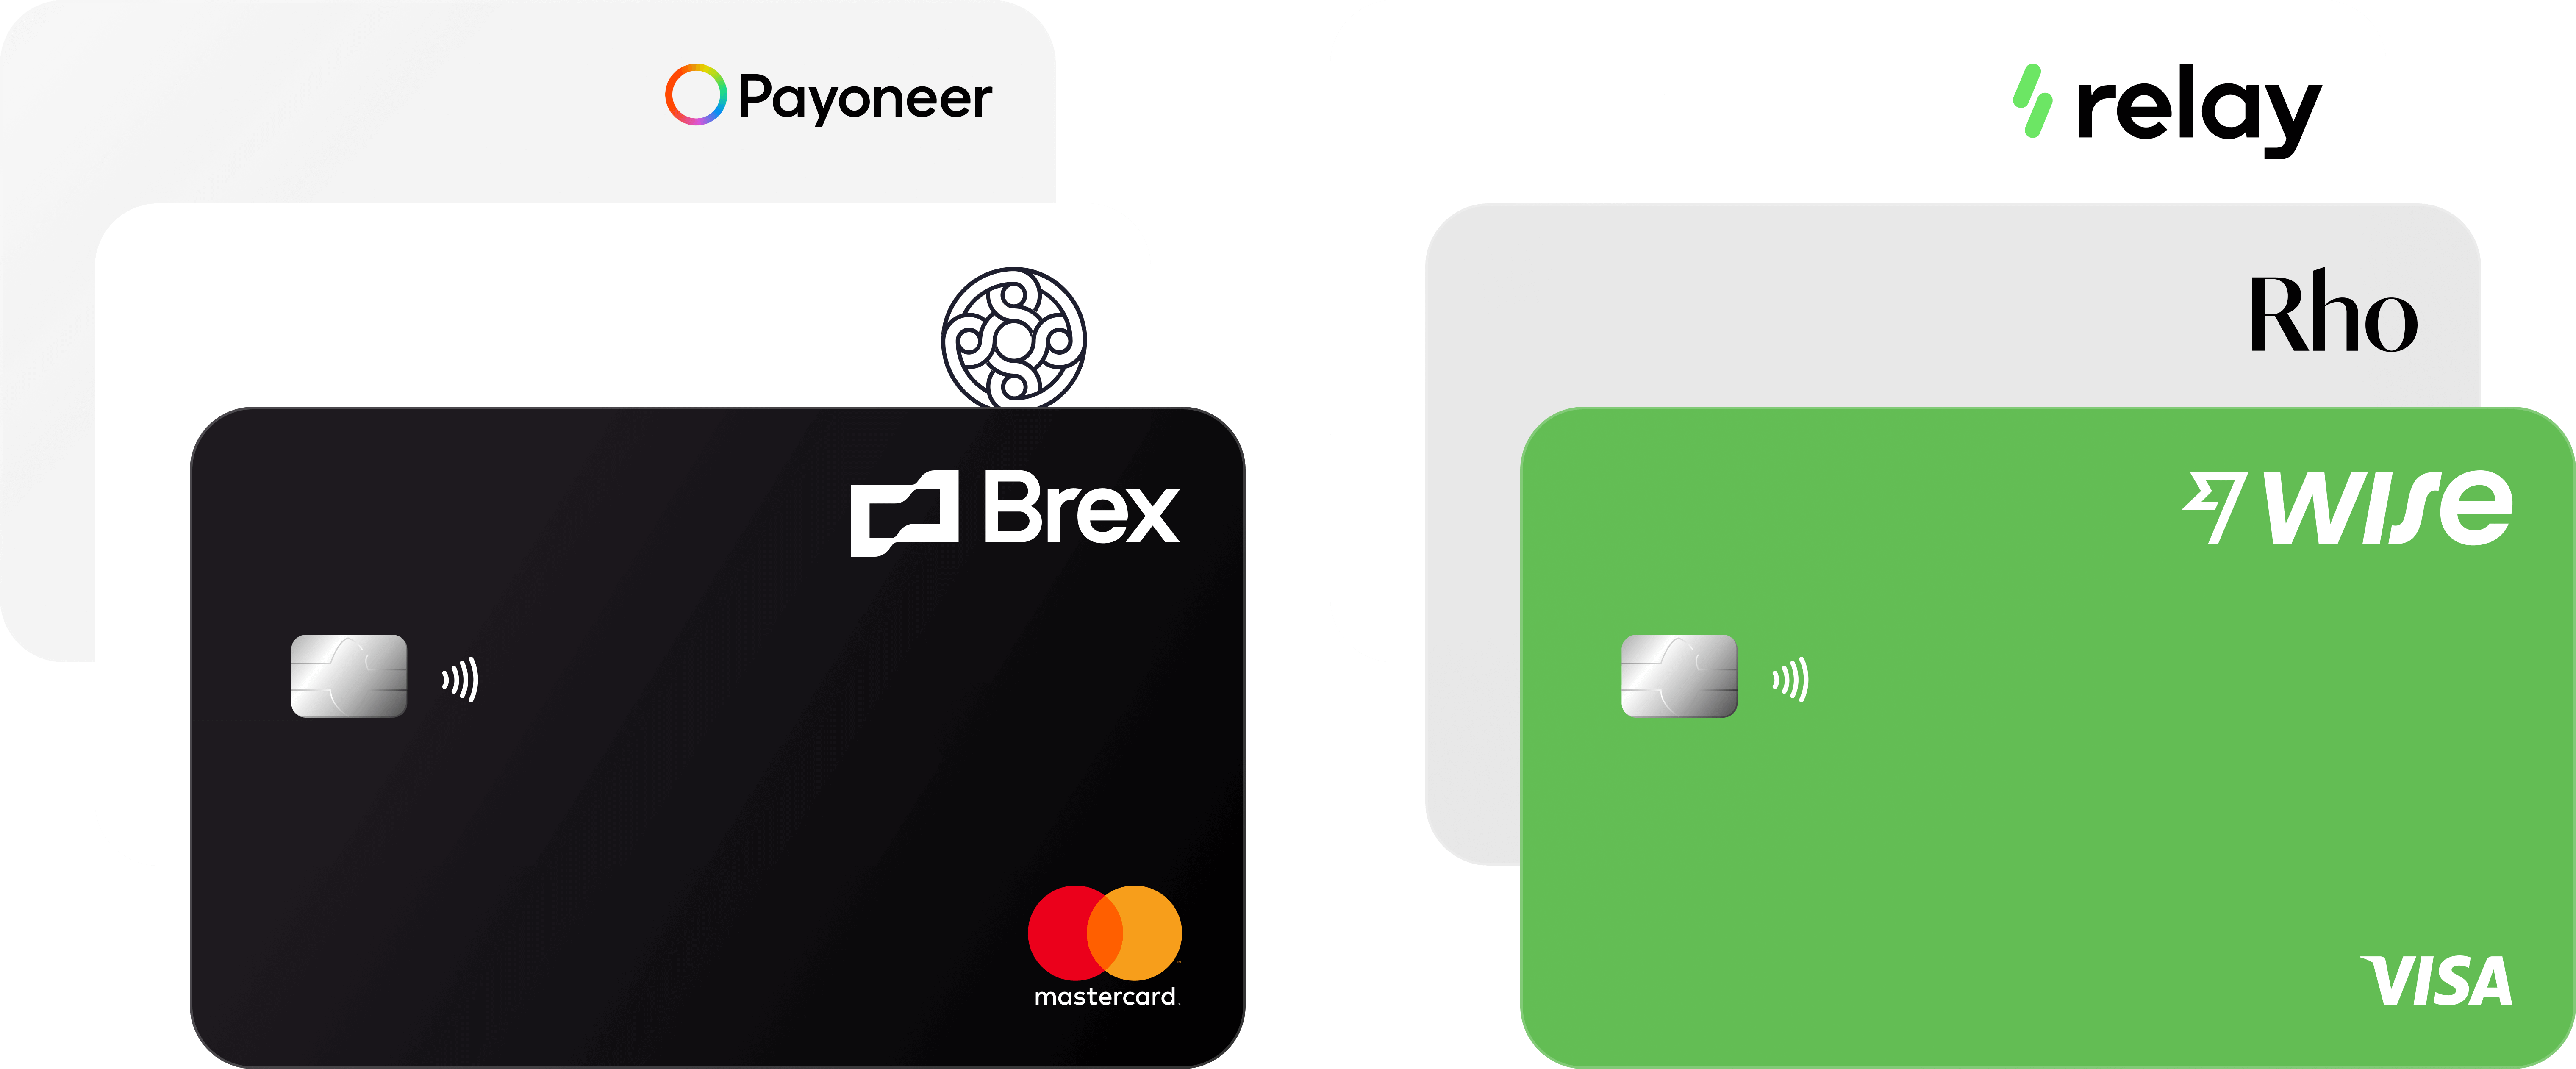 Photo showing debit cards from Brex, Mercury, Payoneer, Relay, RHO, and Wise.